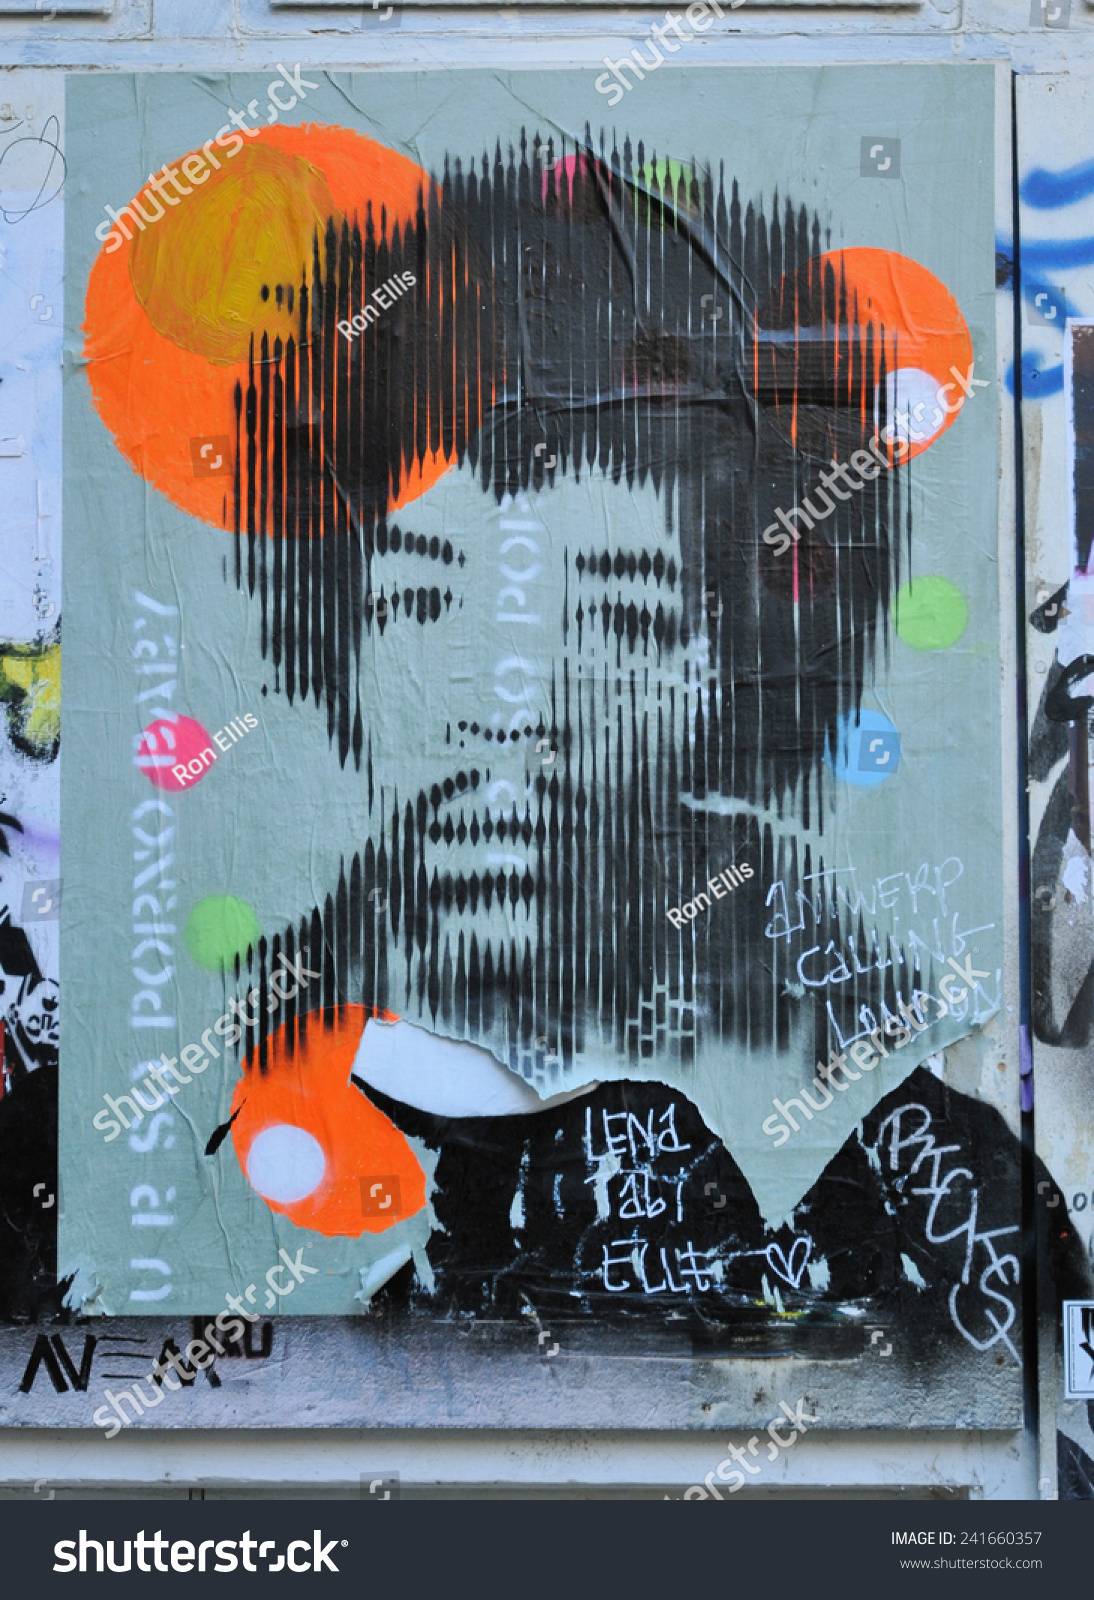 December 28. Poster Of Jimi Hendrix In A Yard